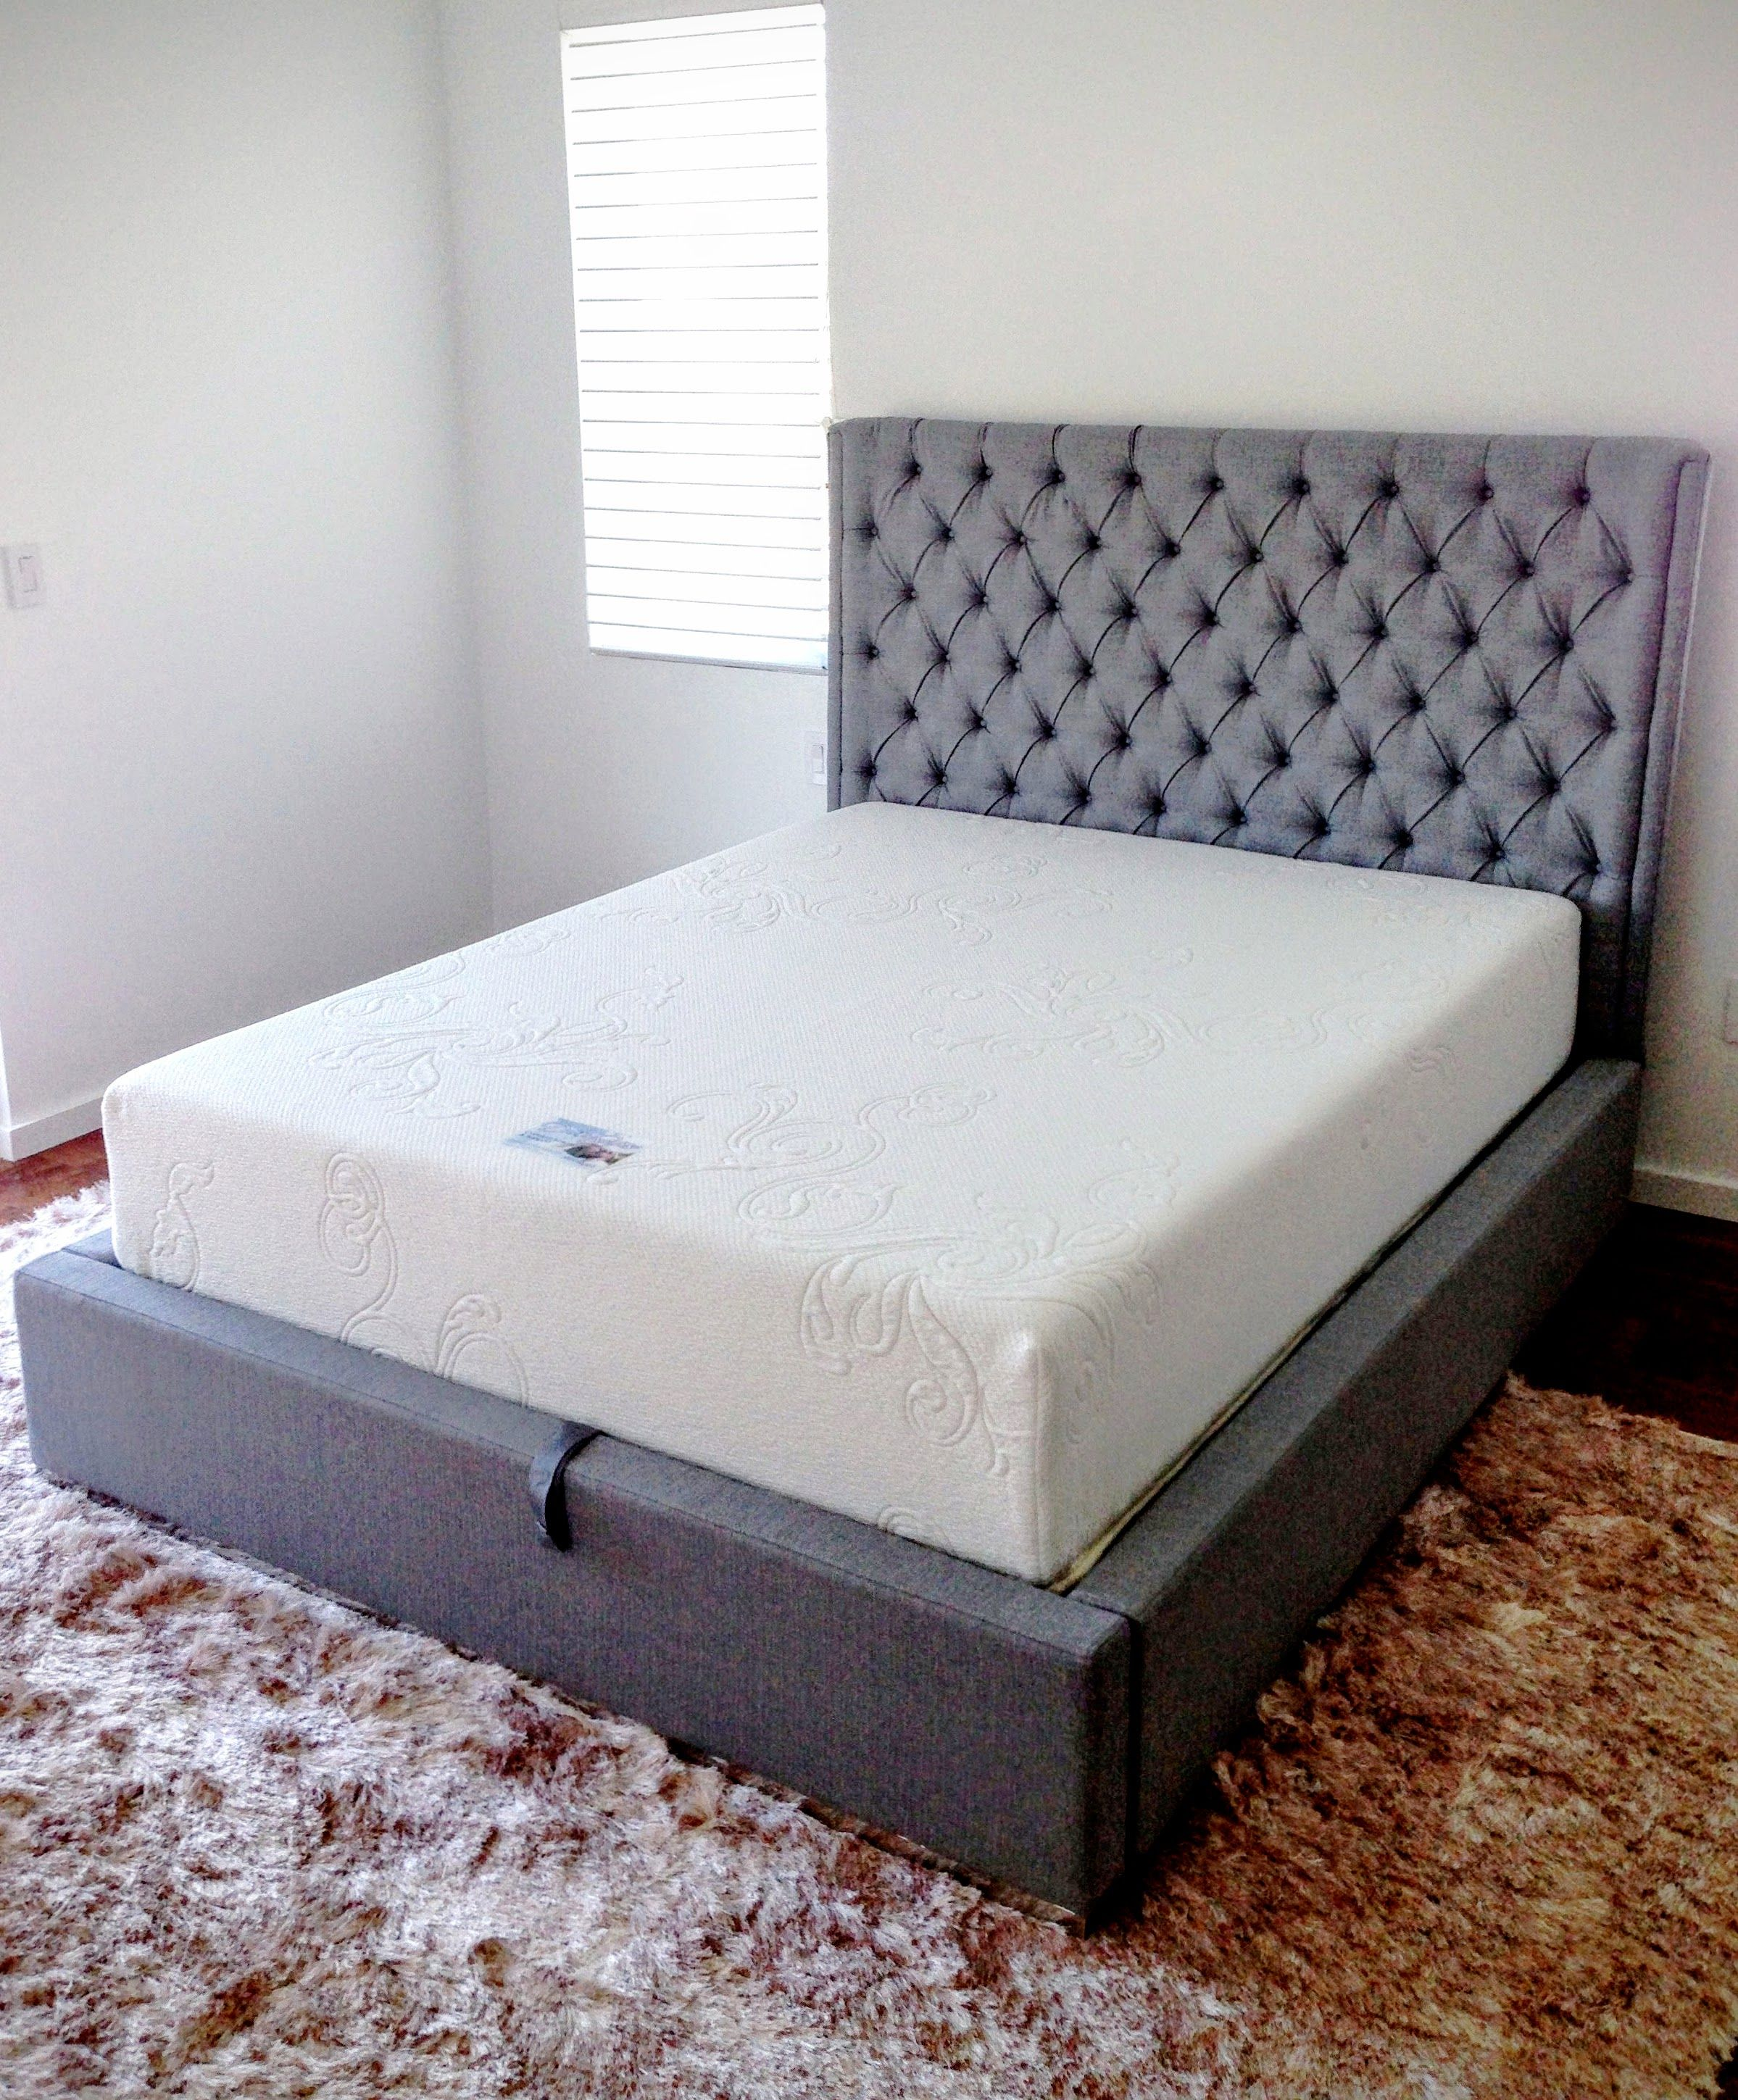 custom made cool gel memory foam mattress www comfortcustombedding